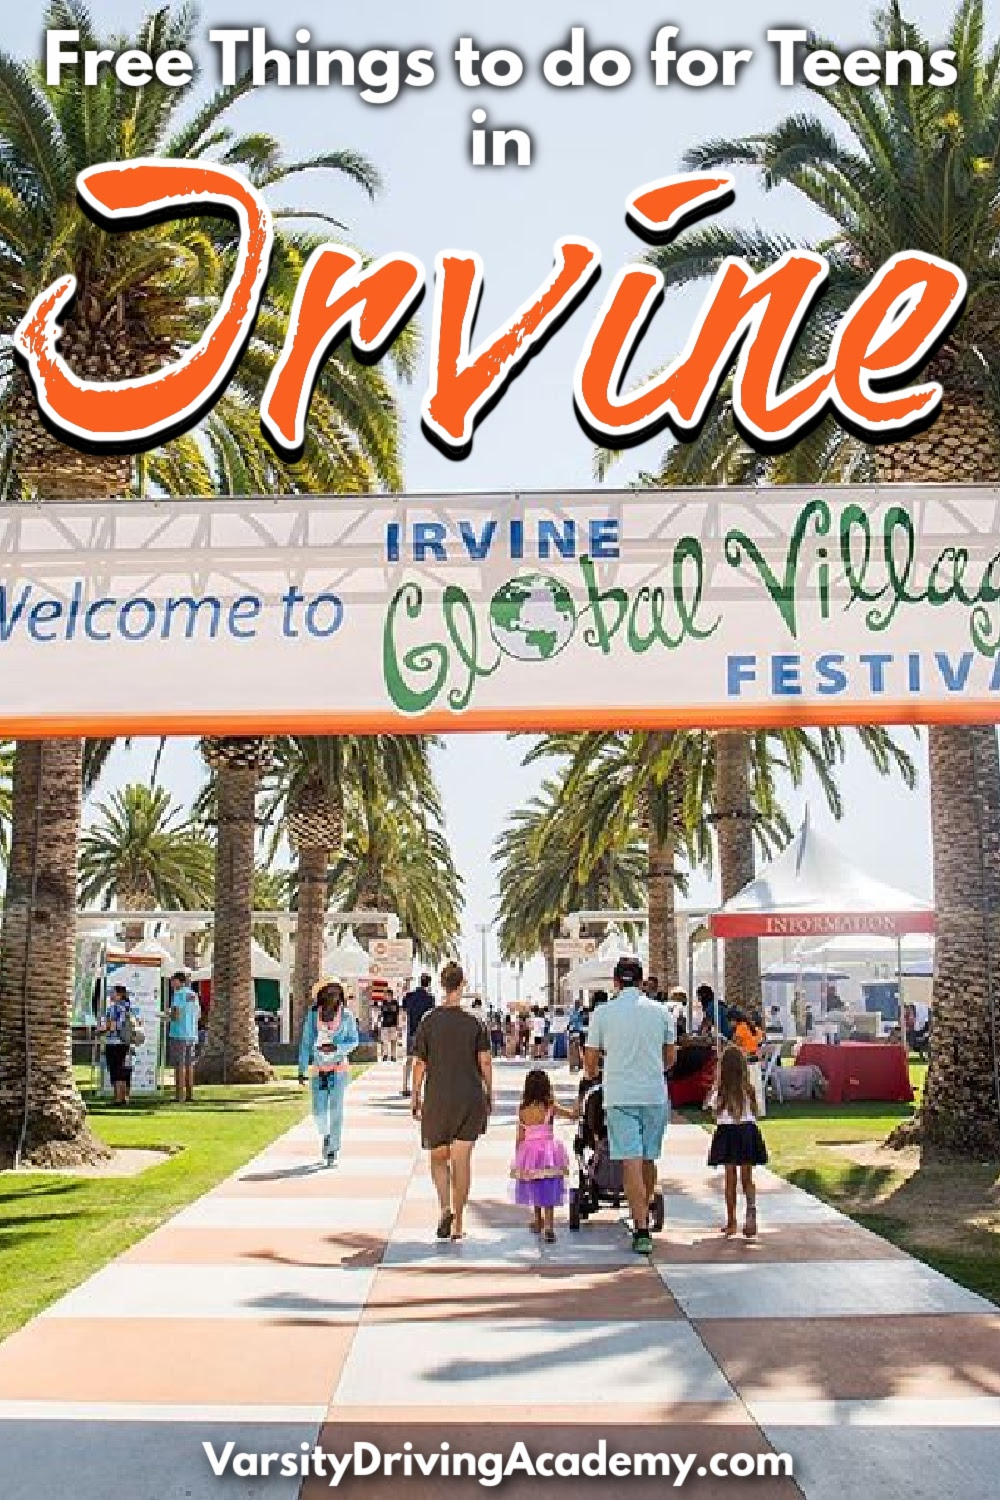 There are so many things for teens to do in Irvine and a lot of the best things to do are free for everyone to enjoy.